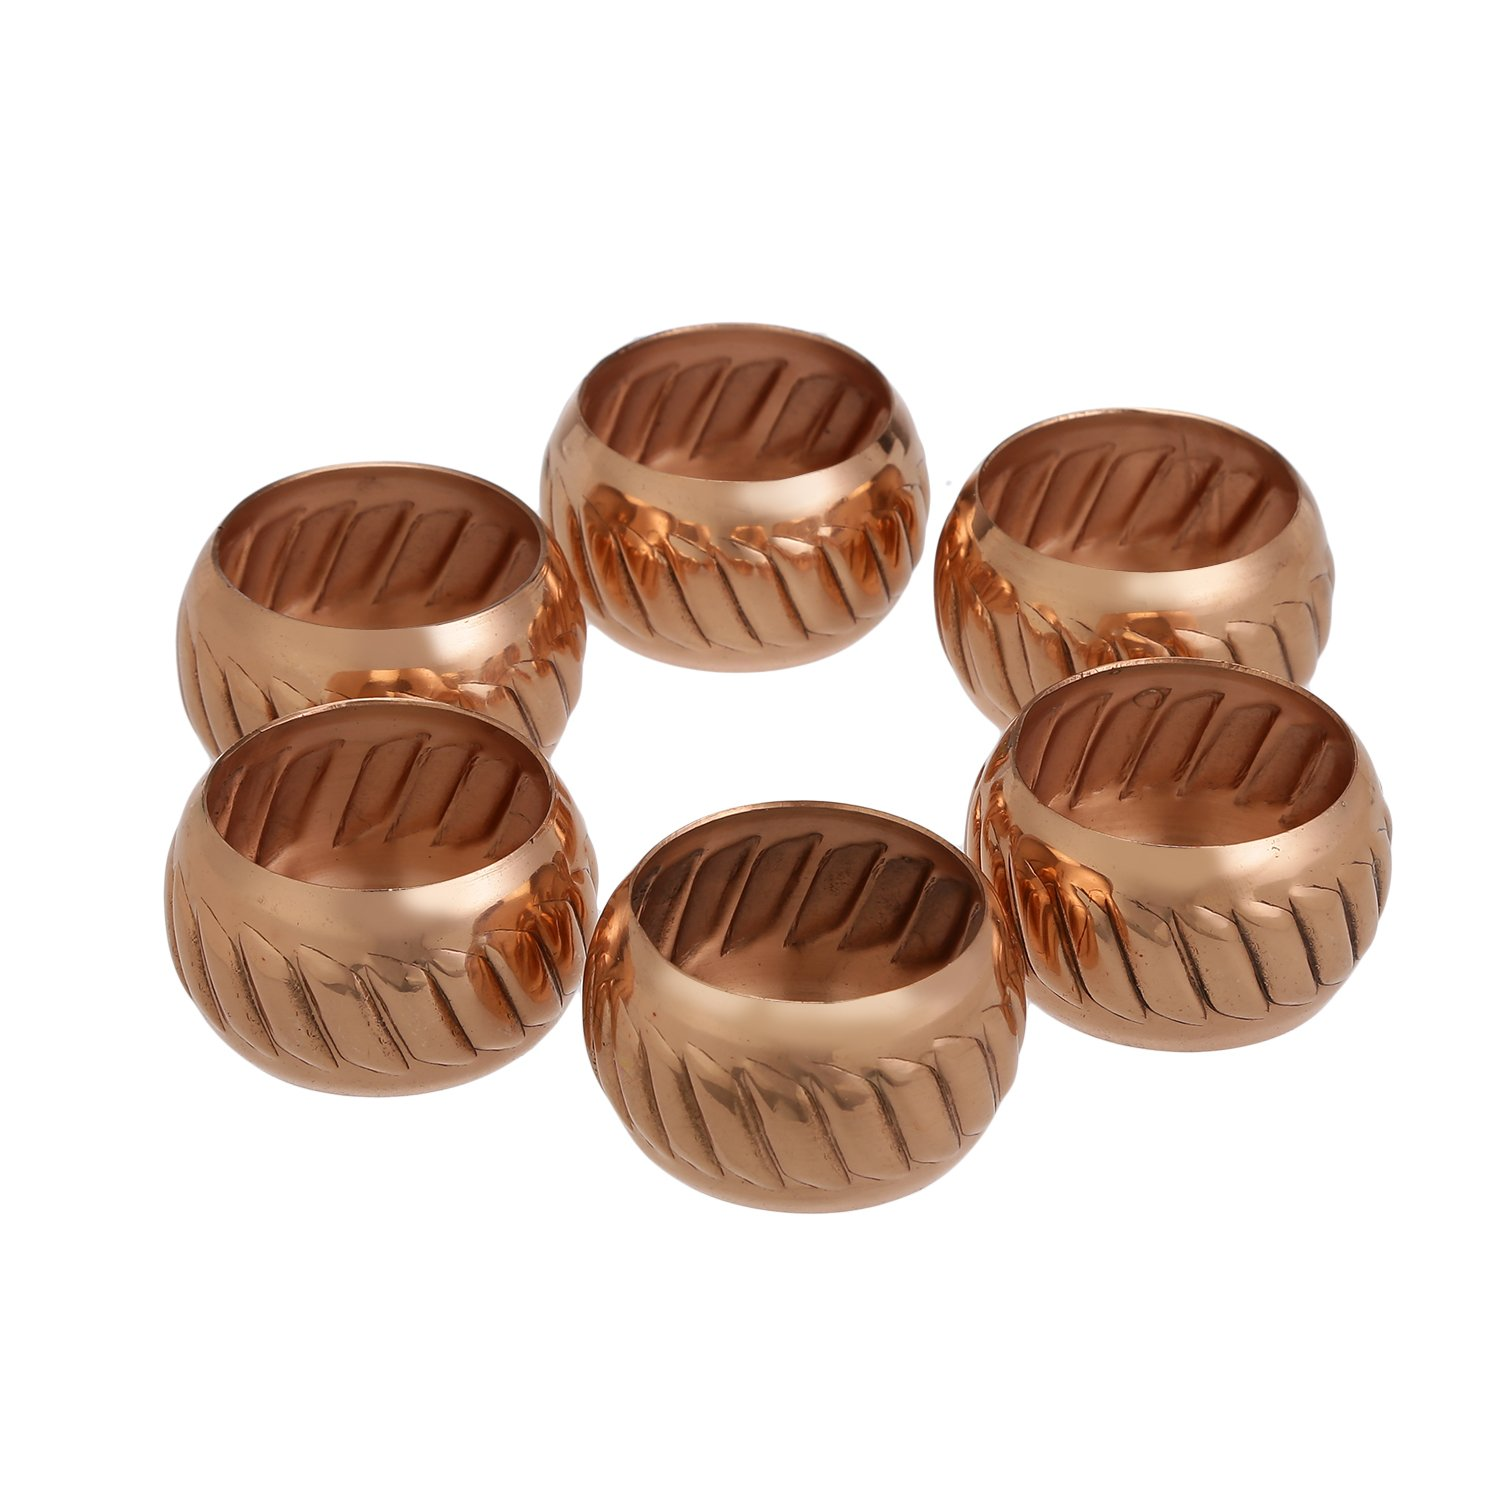 Parties Everyday Use ShalinIndia Copper Napkin Rings Holder Weddings,Dinners Set of 6,Light Weight 40 Grams,Diameter-1.5 Inch Shalincraft MN-copper-NR-101-S6